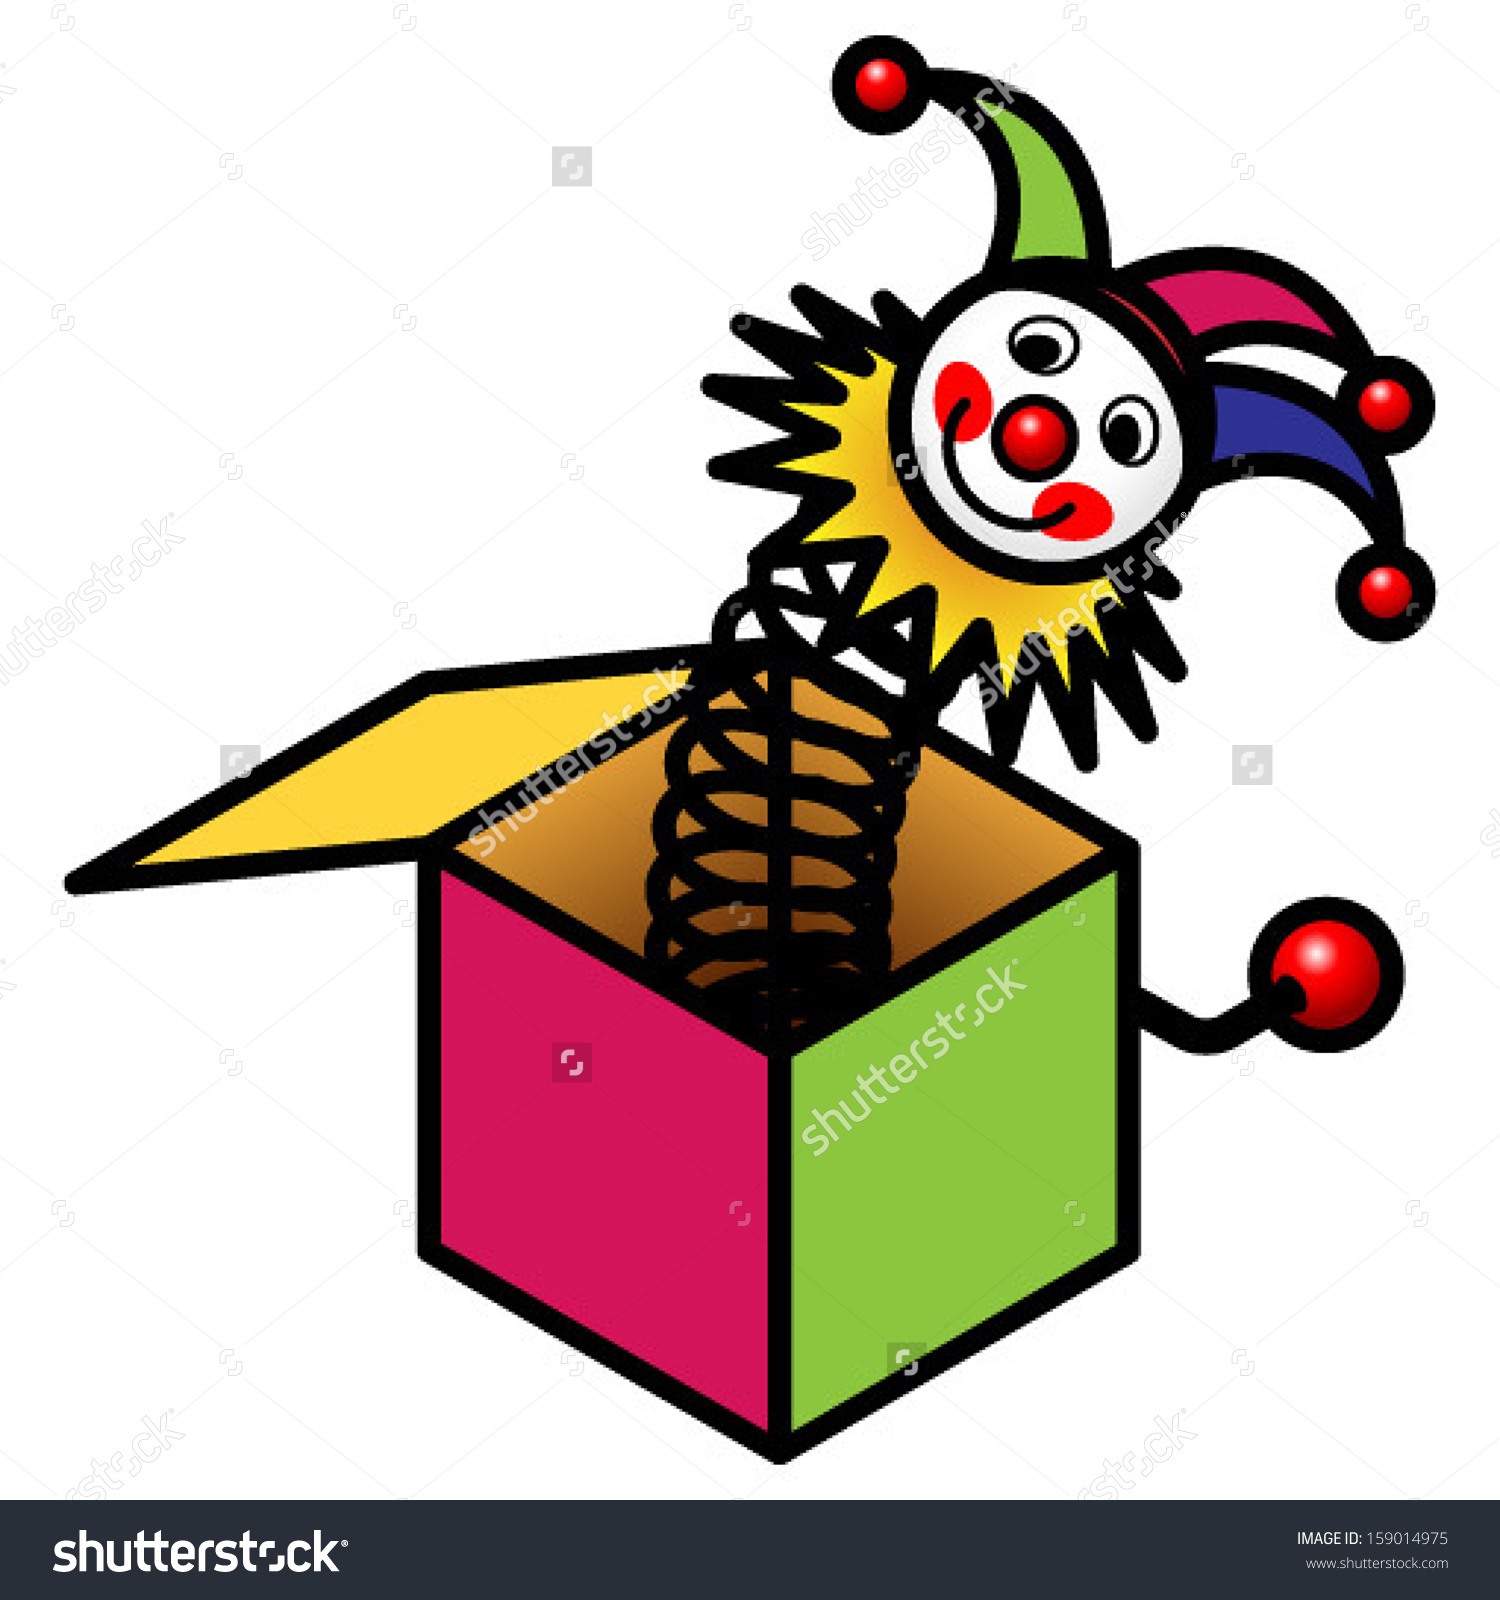 toy box clipart at getdrawings com free for personal use toy box rh getdrawings com  empty toy box clipart